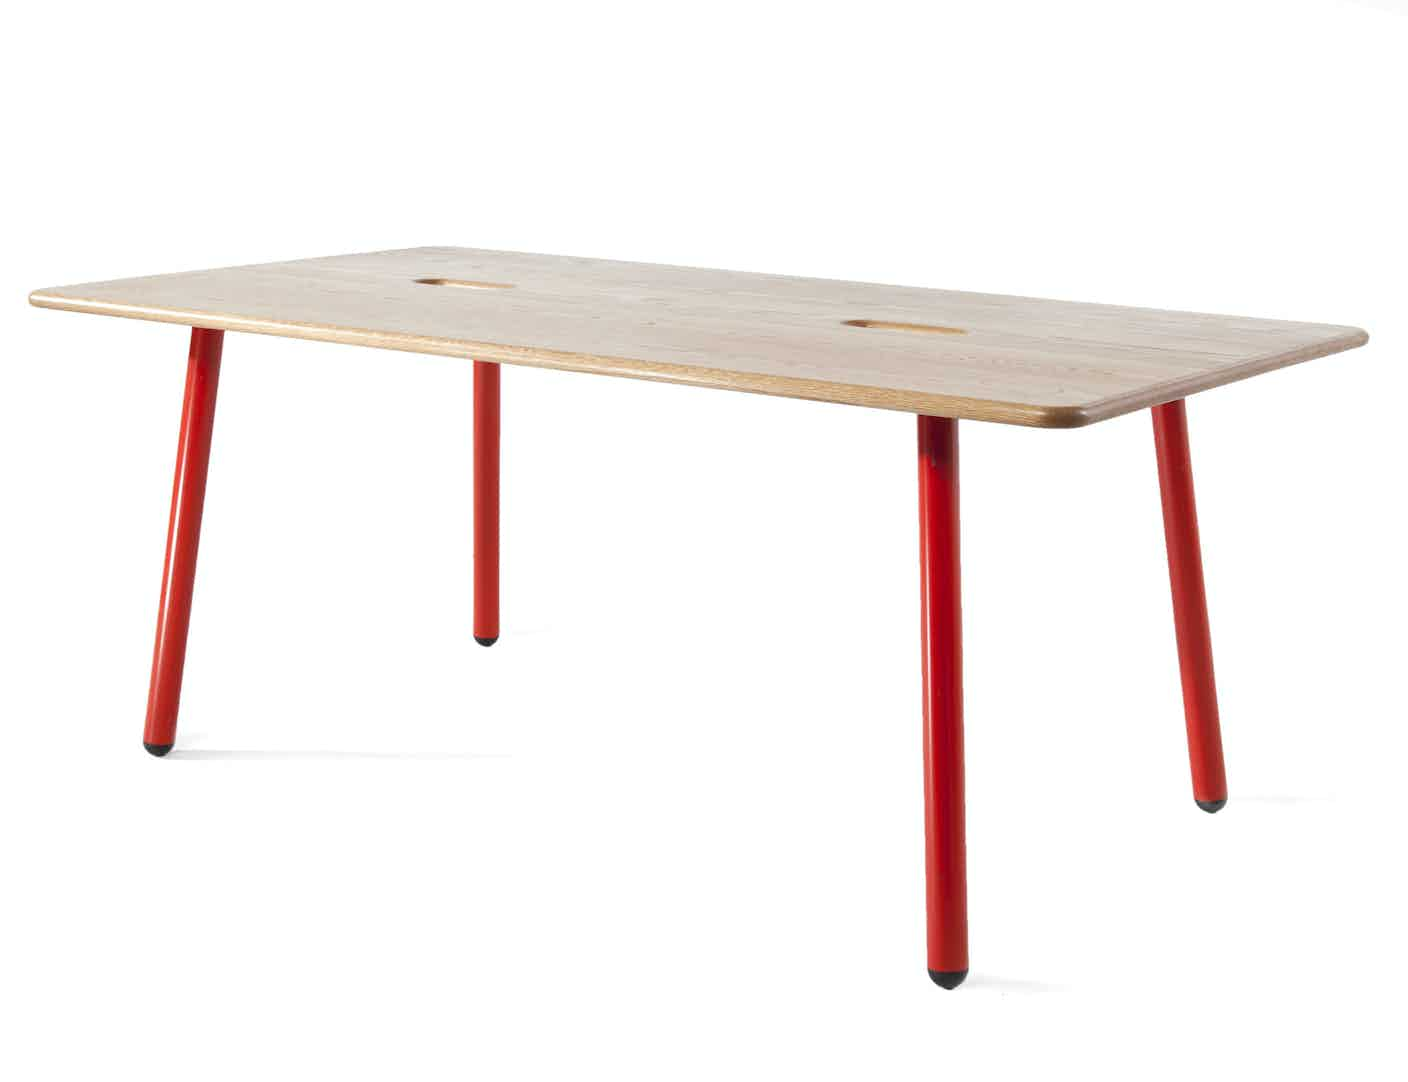 Deadgood-working-table-large-angle-haute-living